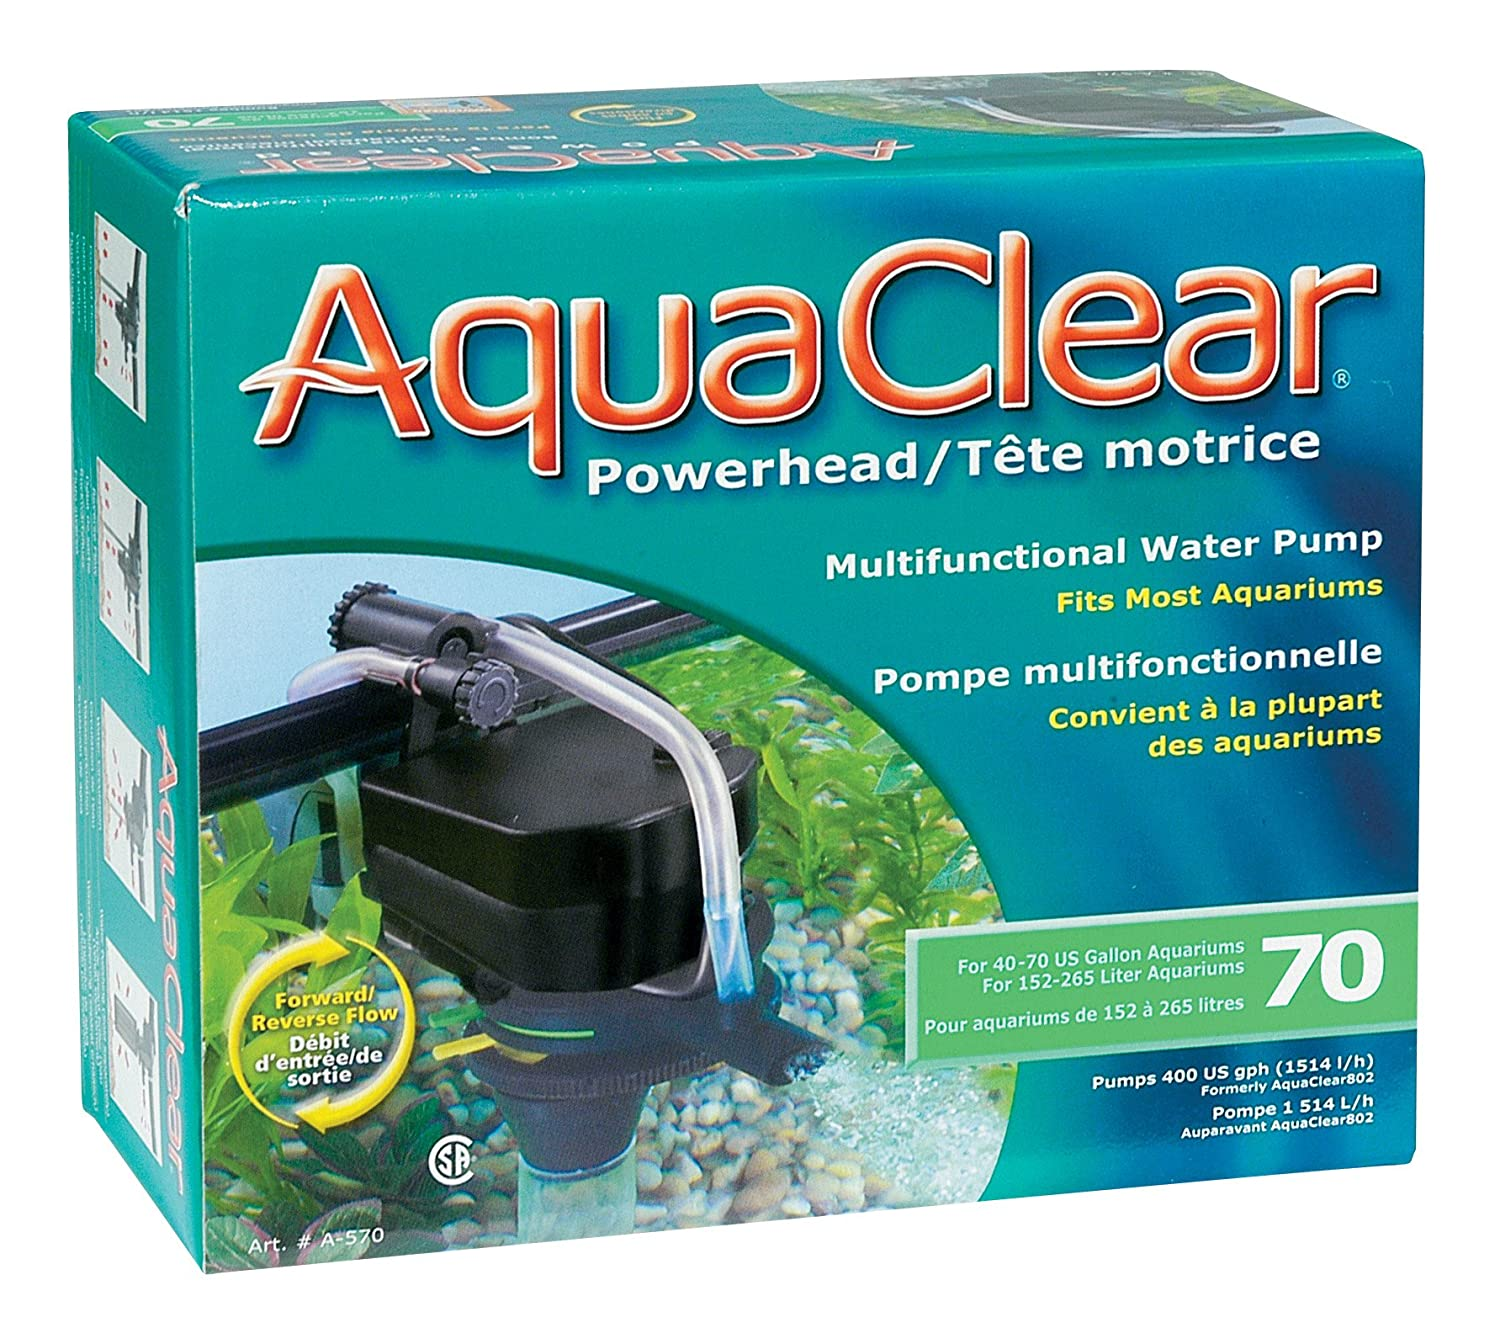 Amazon.com : AquaClear 70 Powerhead, 400 Gallons per Hour, UL ...